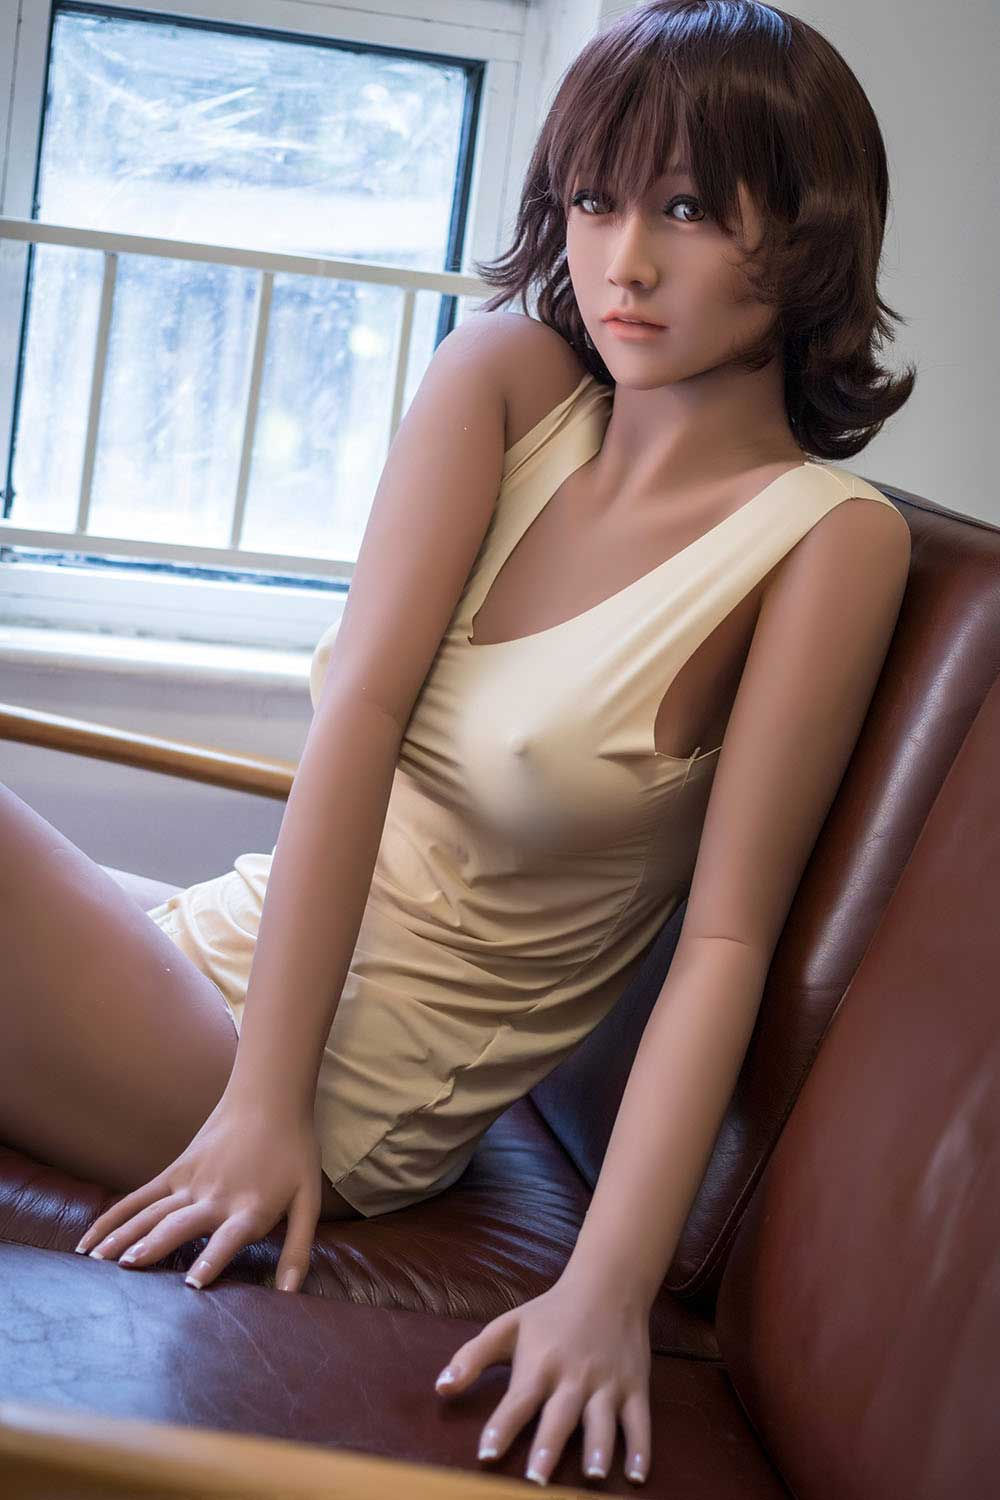 Short Hair Cute Girl Looking Sex Doll With Cup